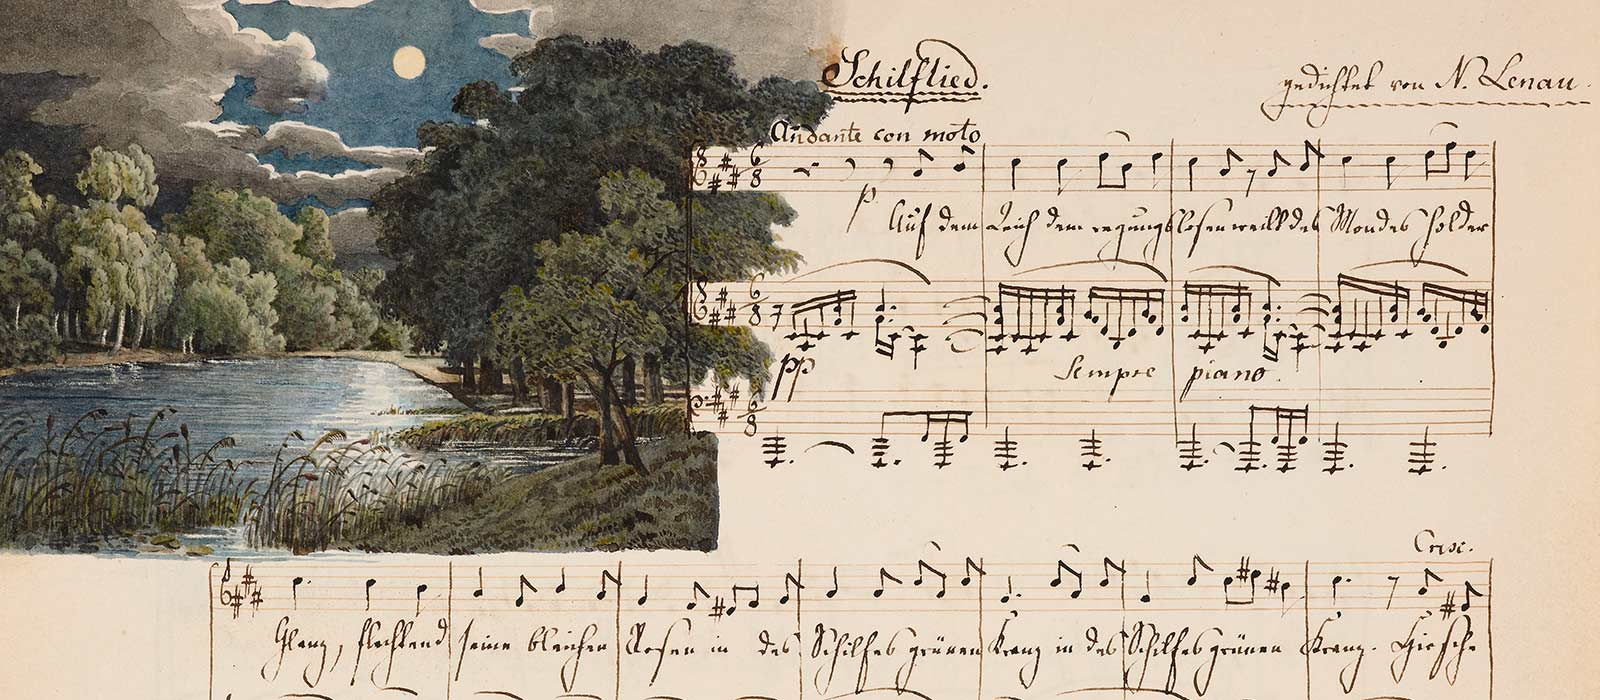 A hand-written and illustrated score of Schilflied (Reed Song) by Felix Mendelssohn from the Bodleian's collections